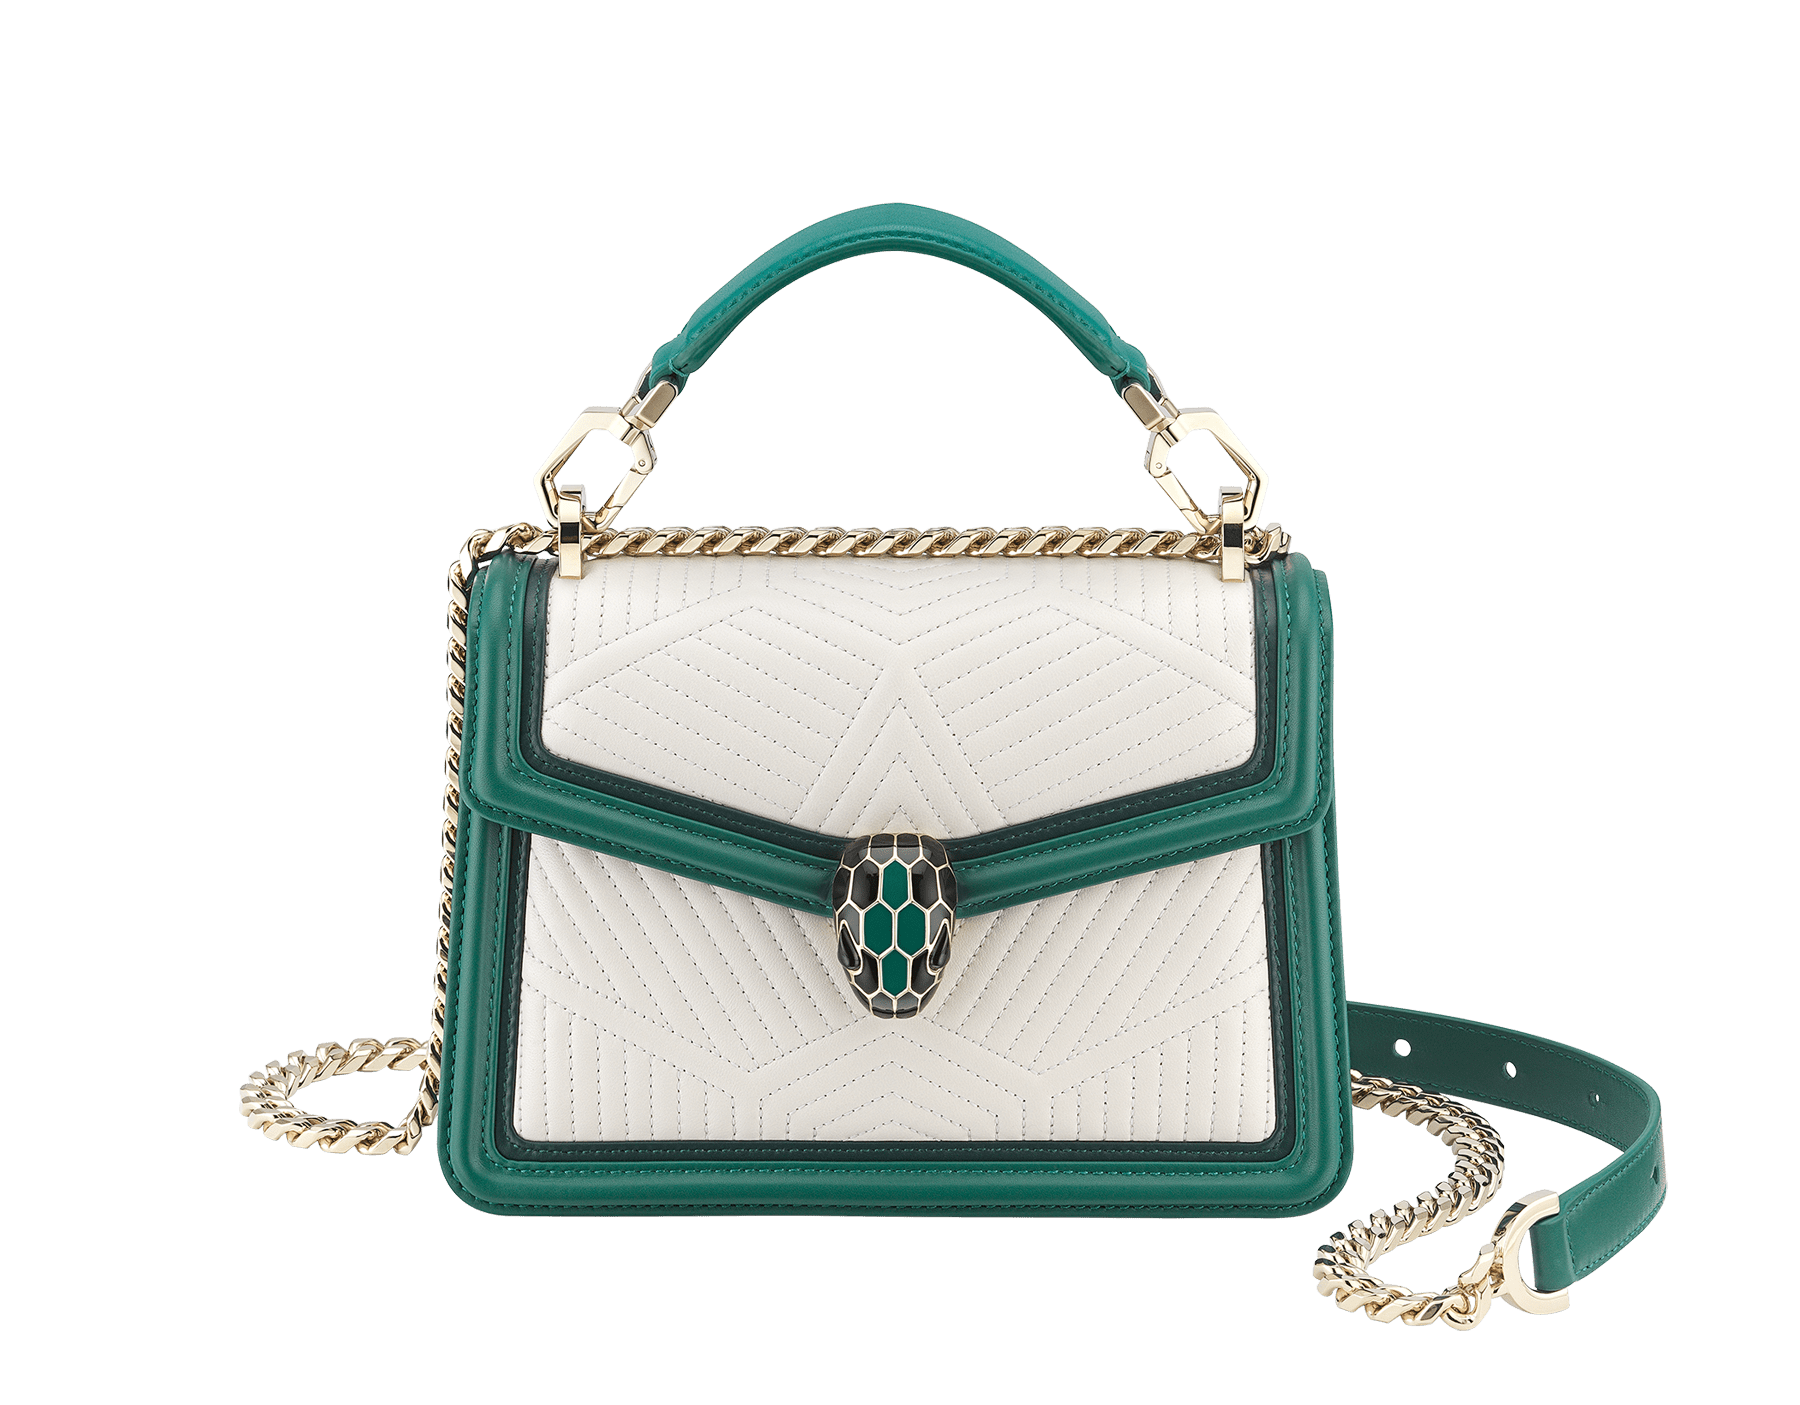 """""""Serpenti Diamond Blast"""" top handle bag in mimetic jade quilted nappa leather and mimetic jade smooth calf leather frames. Iconic snakehead closure in light gold plated brass enriched with matte black and shiny mimetic jade enamel and black onyx eyes. 1063-FQDb image 1"""